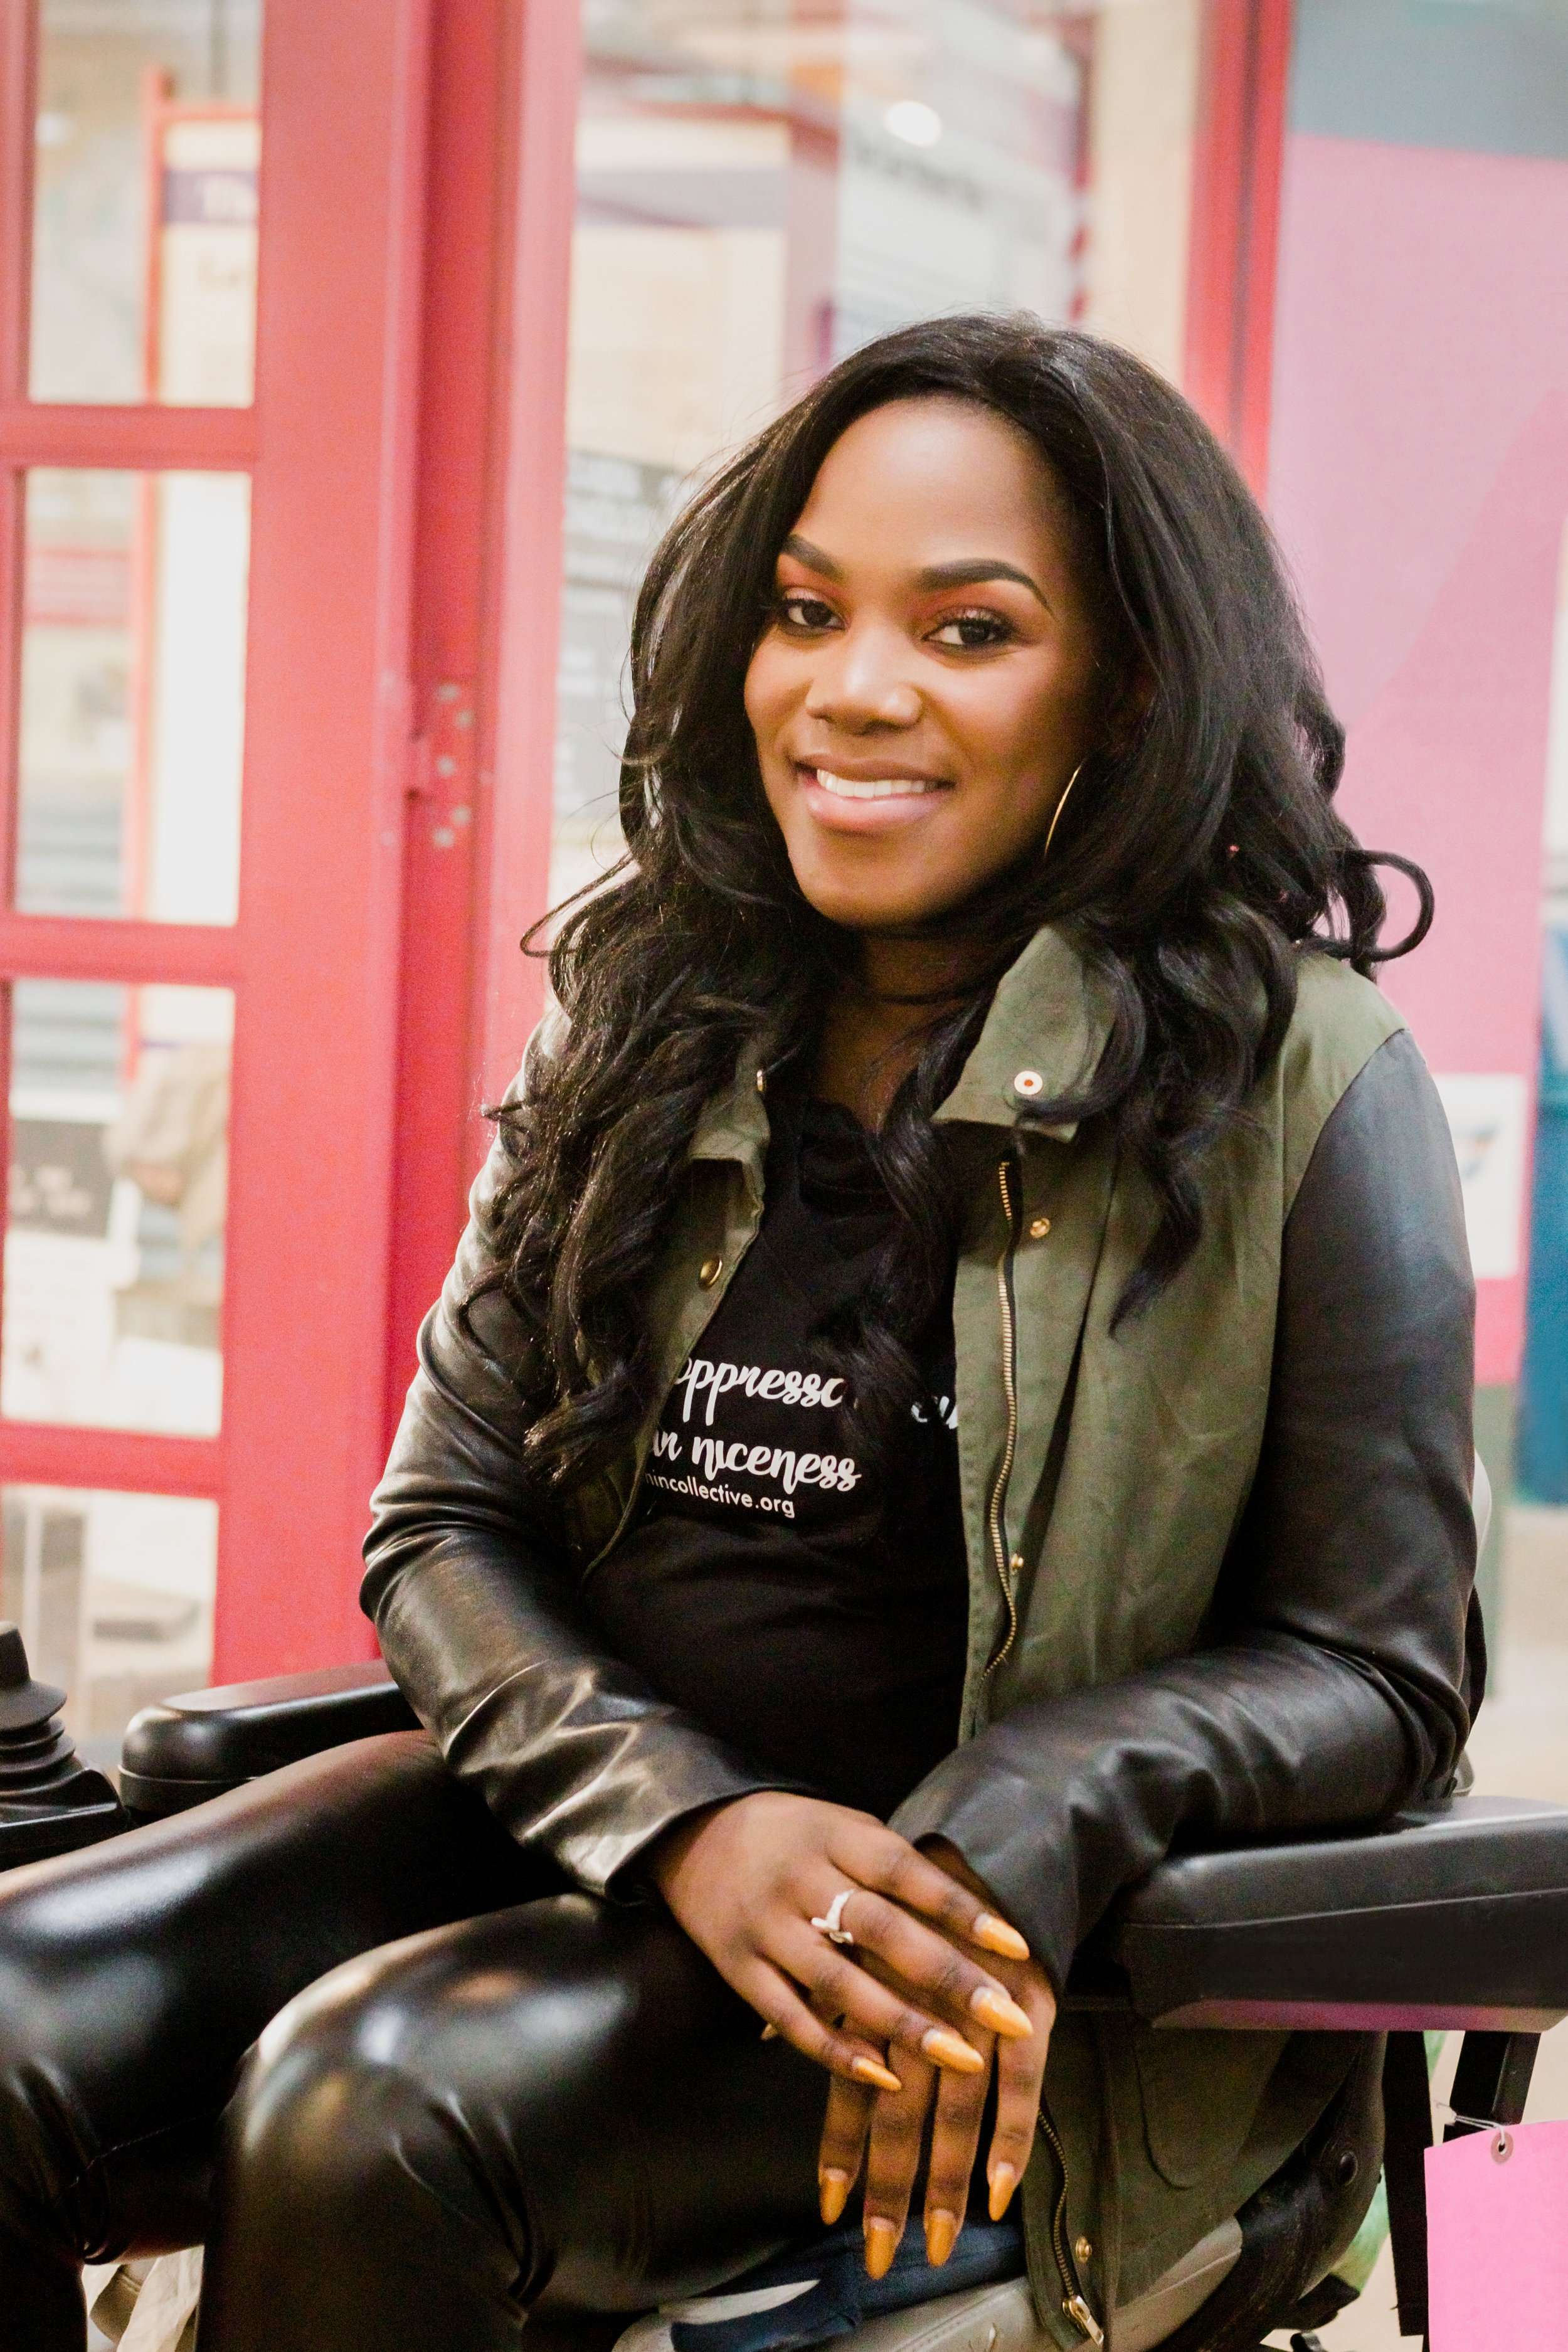 Ola Ojewumi - Ola graduated from the University of Maryland, College Park with a bachelor's degree in government and politics. As a student, she founded two nonprofits, the Sacred Hearts Children's Transplant Foundation and Project ASCEND. These organizations provide college scholarships to low-income students, funding for women's education programs, and distributes teddy bears and books to children awaiting organ transplants across the United States.